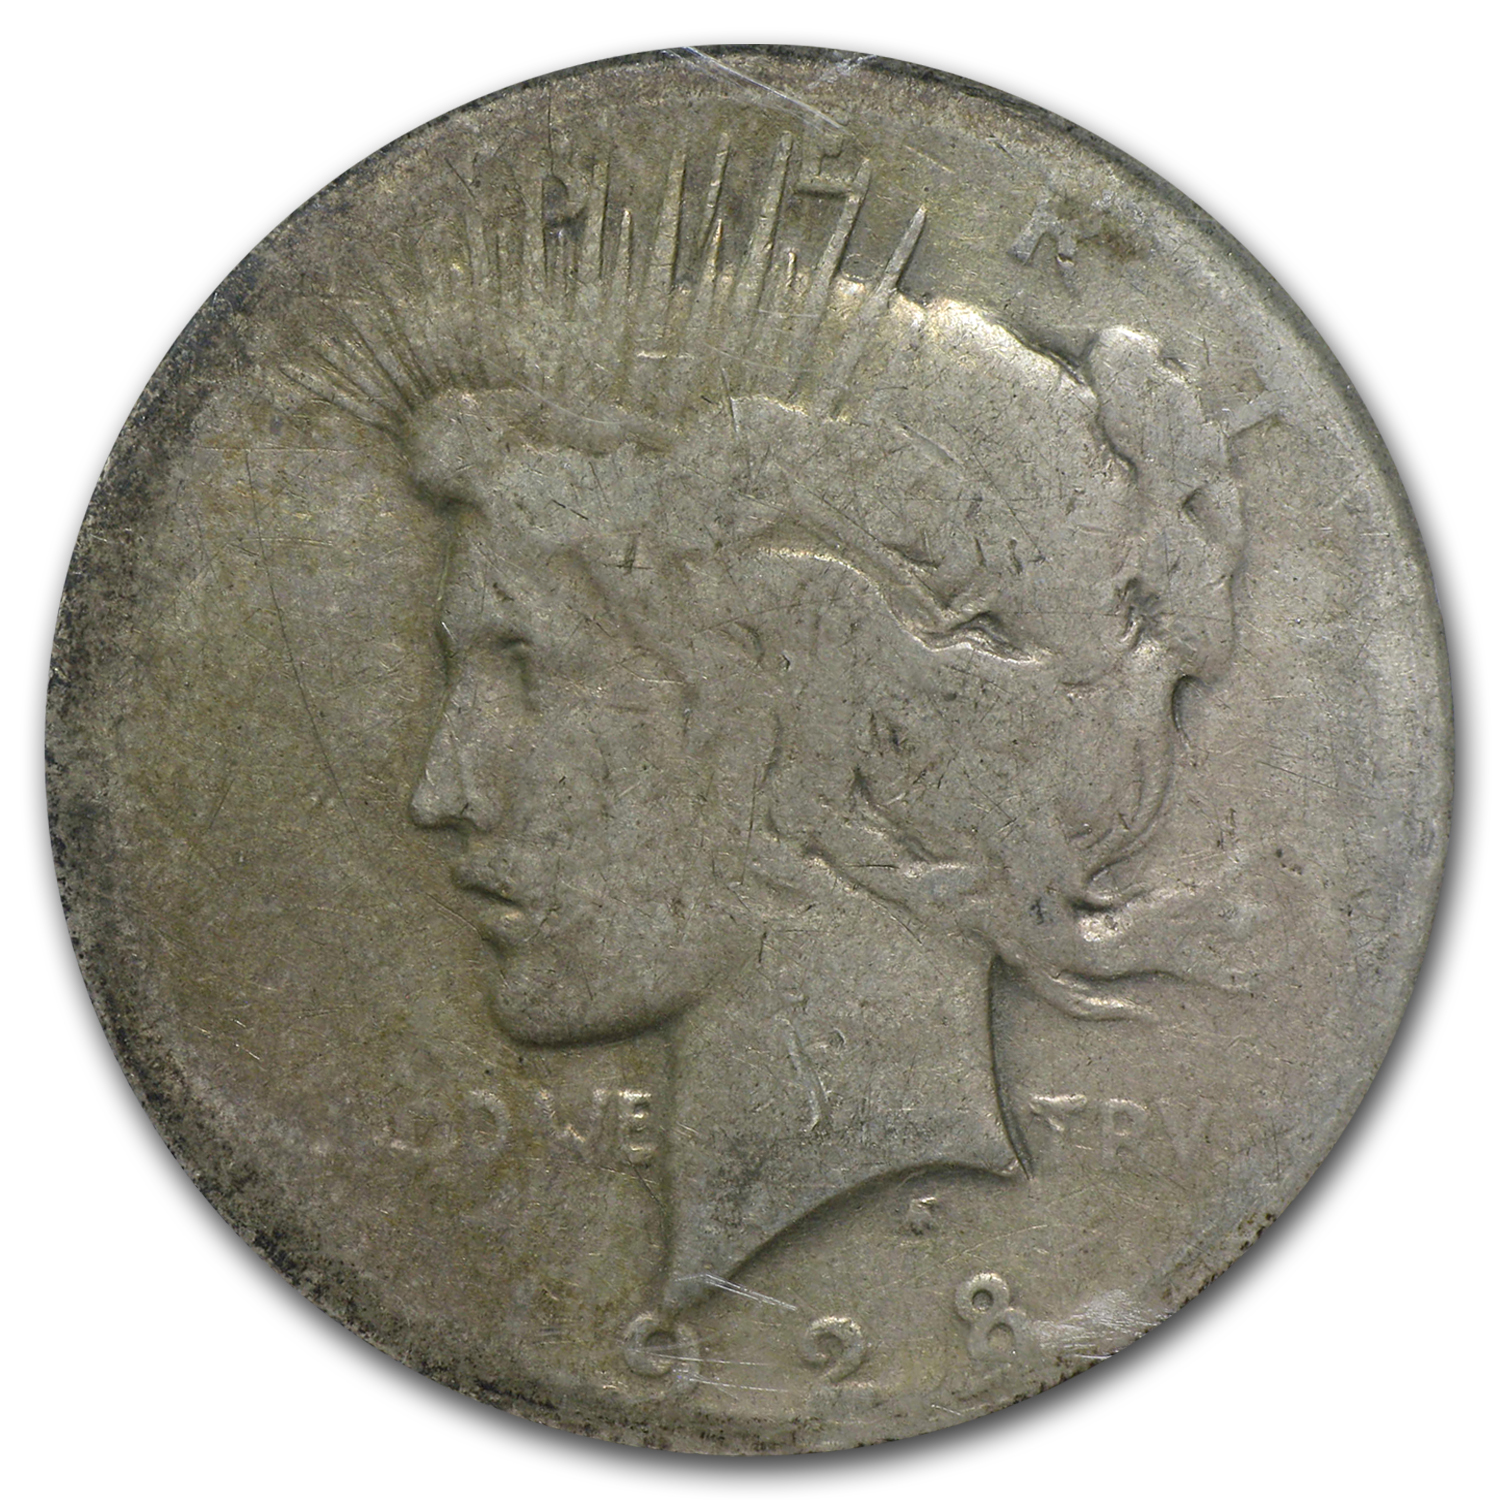 1928 Peace Dollar Almost Good Details - Damaged NCS